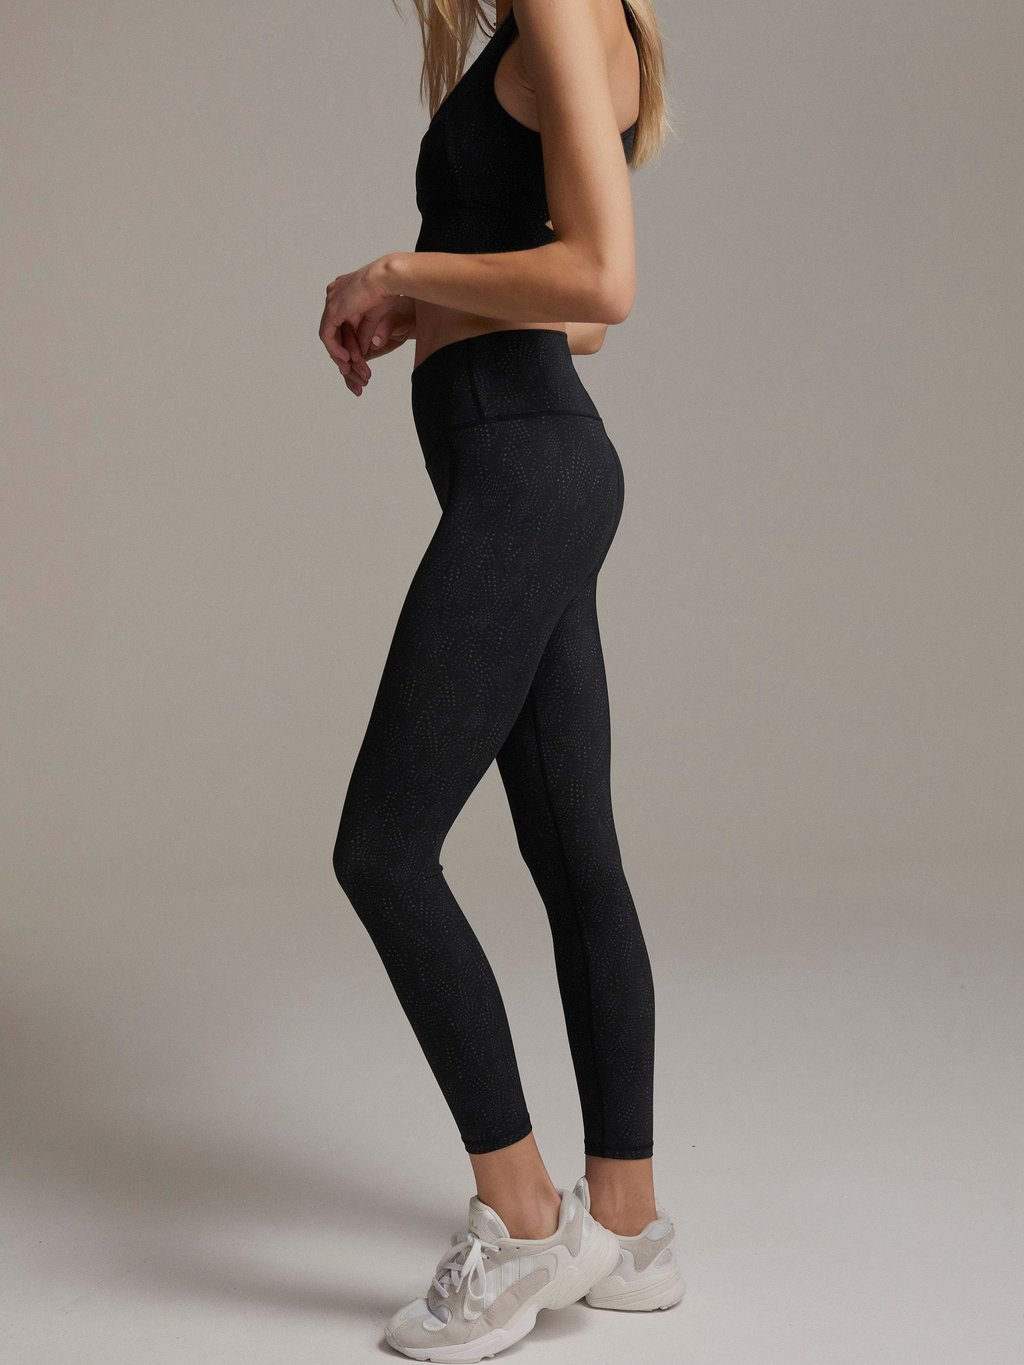 Luna Leggings, Varley Leggings, Yoga Pants, Yoga leggings, High Rise Legging, Letolux, Funktionleggings, Performance Leggings, Schwarze Leggings